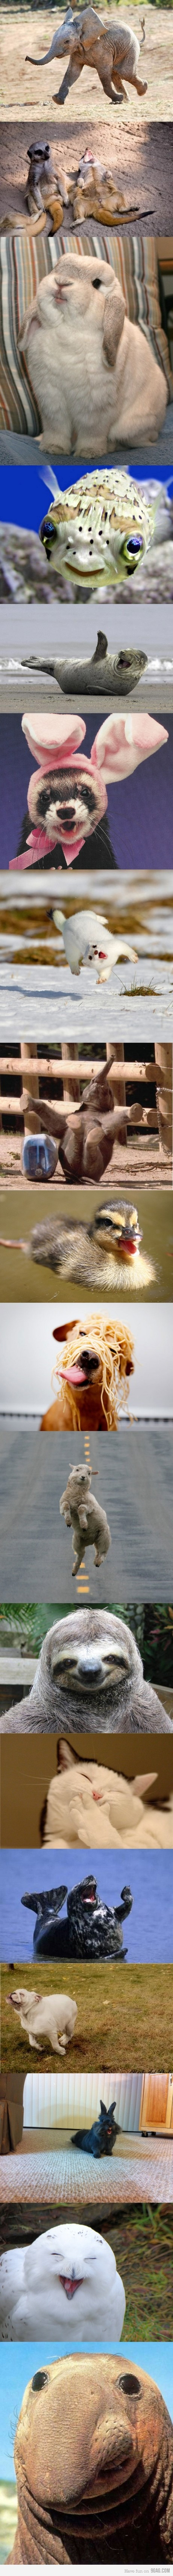 world's happiest animals!